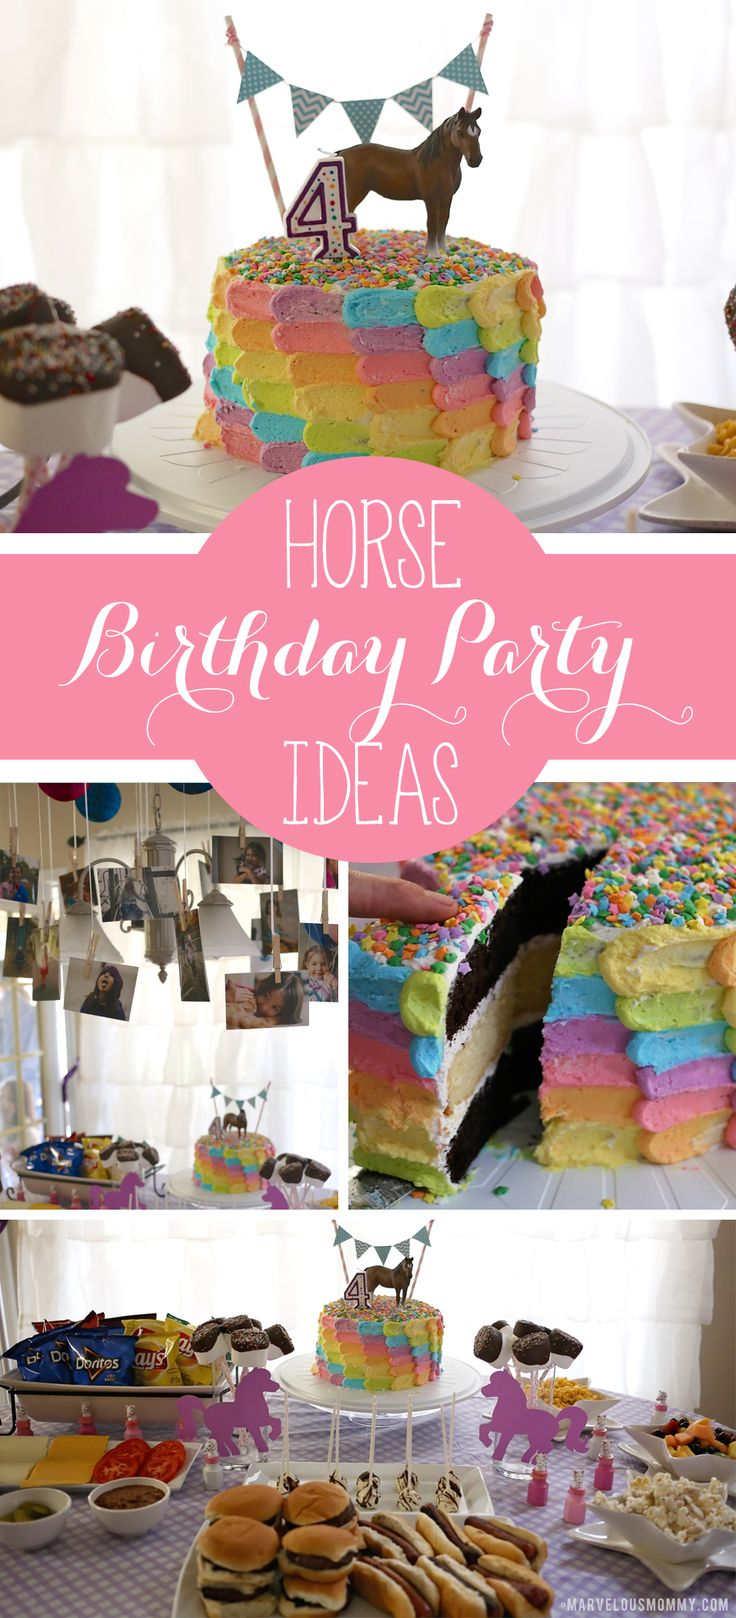 Horse Birthday Party Ideas | Pony Party | Decorations | Rainbow Petal Cake | Little Girls Birthday Party | Burger Bar | Chex Mix | Fruit Salad